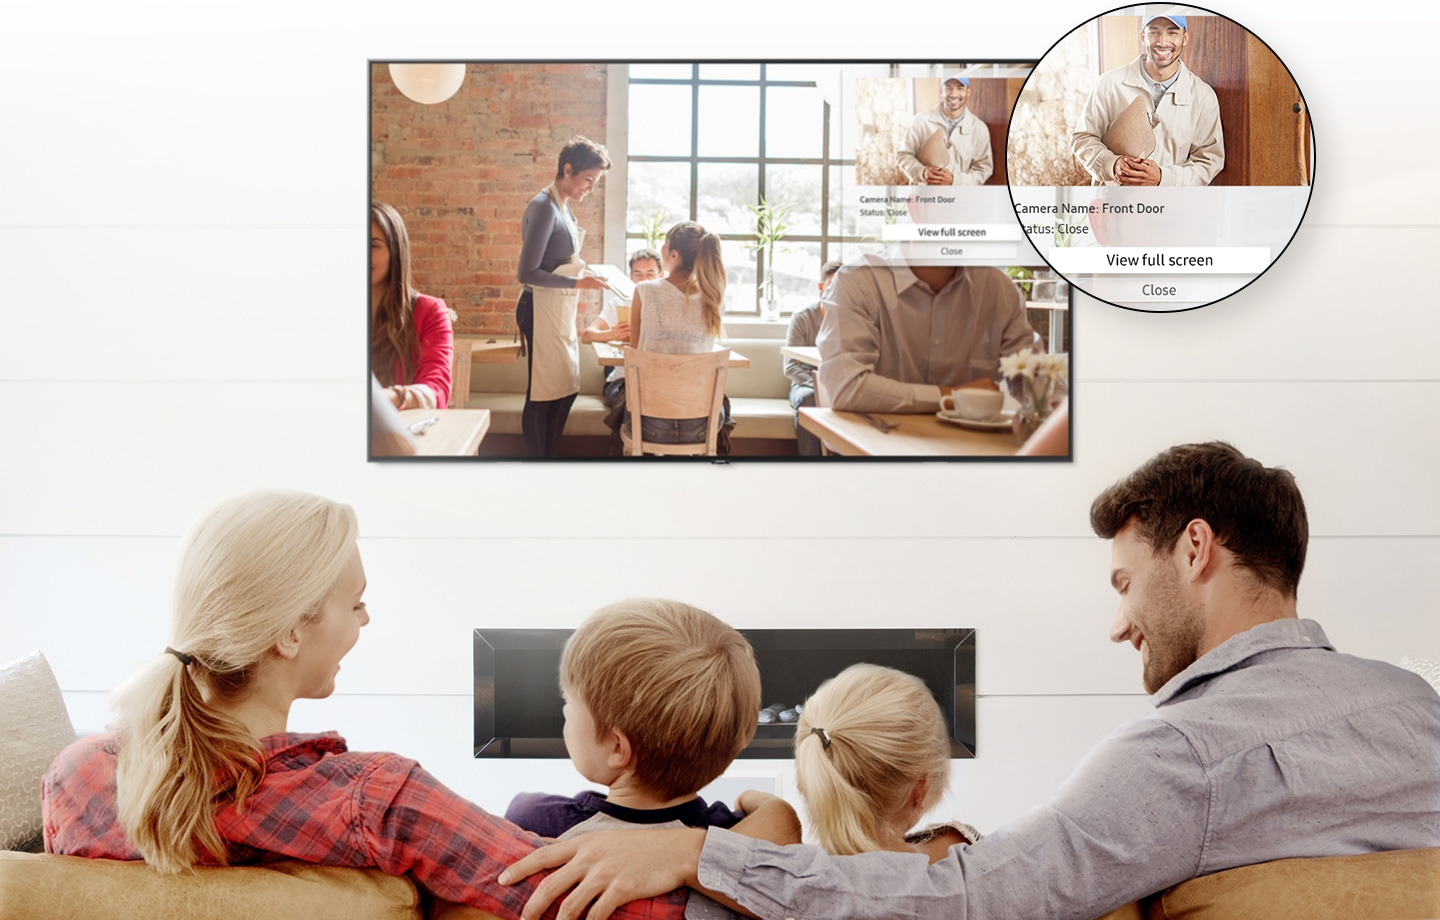 4 people are watching Smart TV with a pop-up alarm showing who's ring the doorbell.